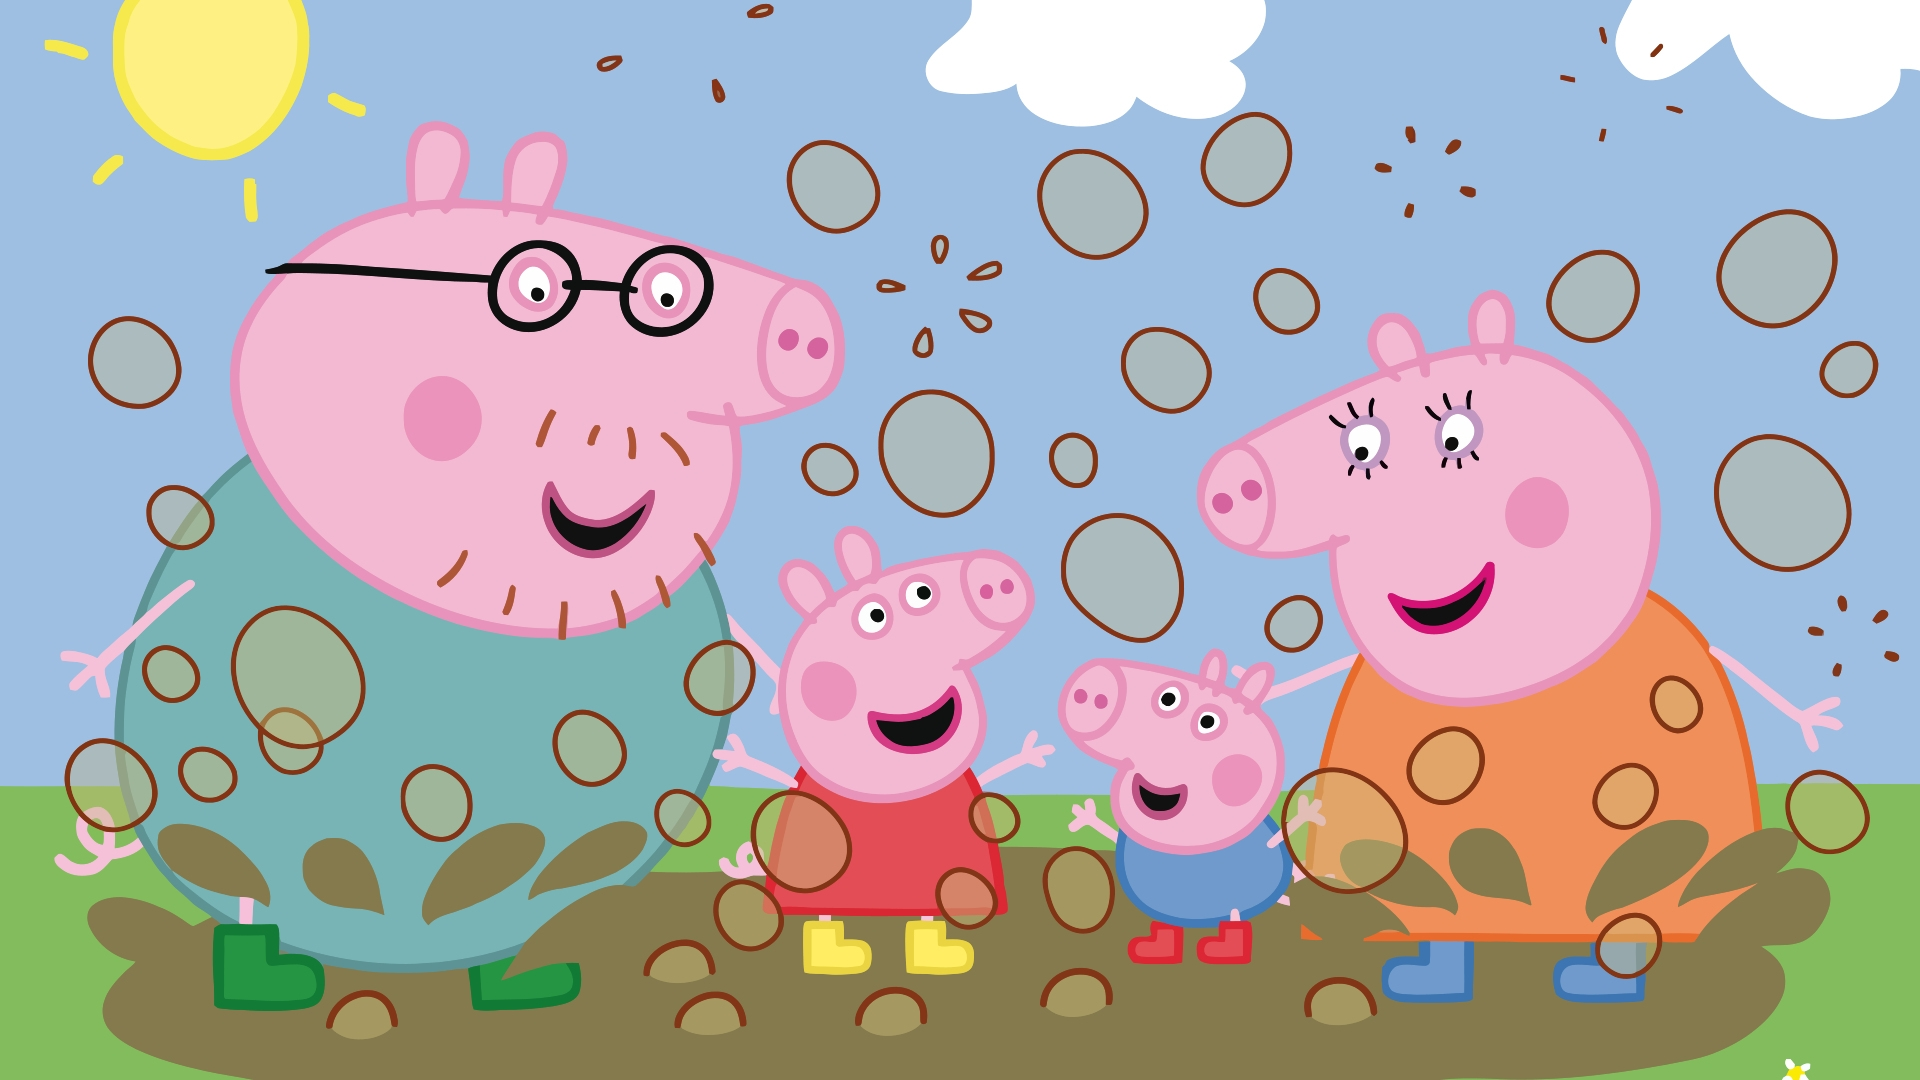 Peppa Pig   Peppa Pig Wallpaper 1920x1080 57156 1920x1080